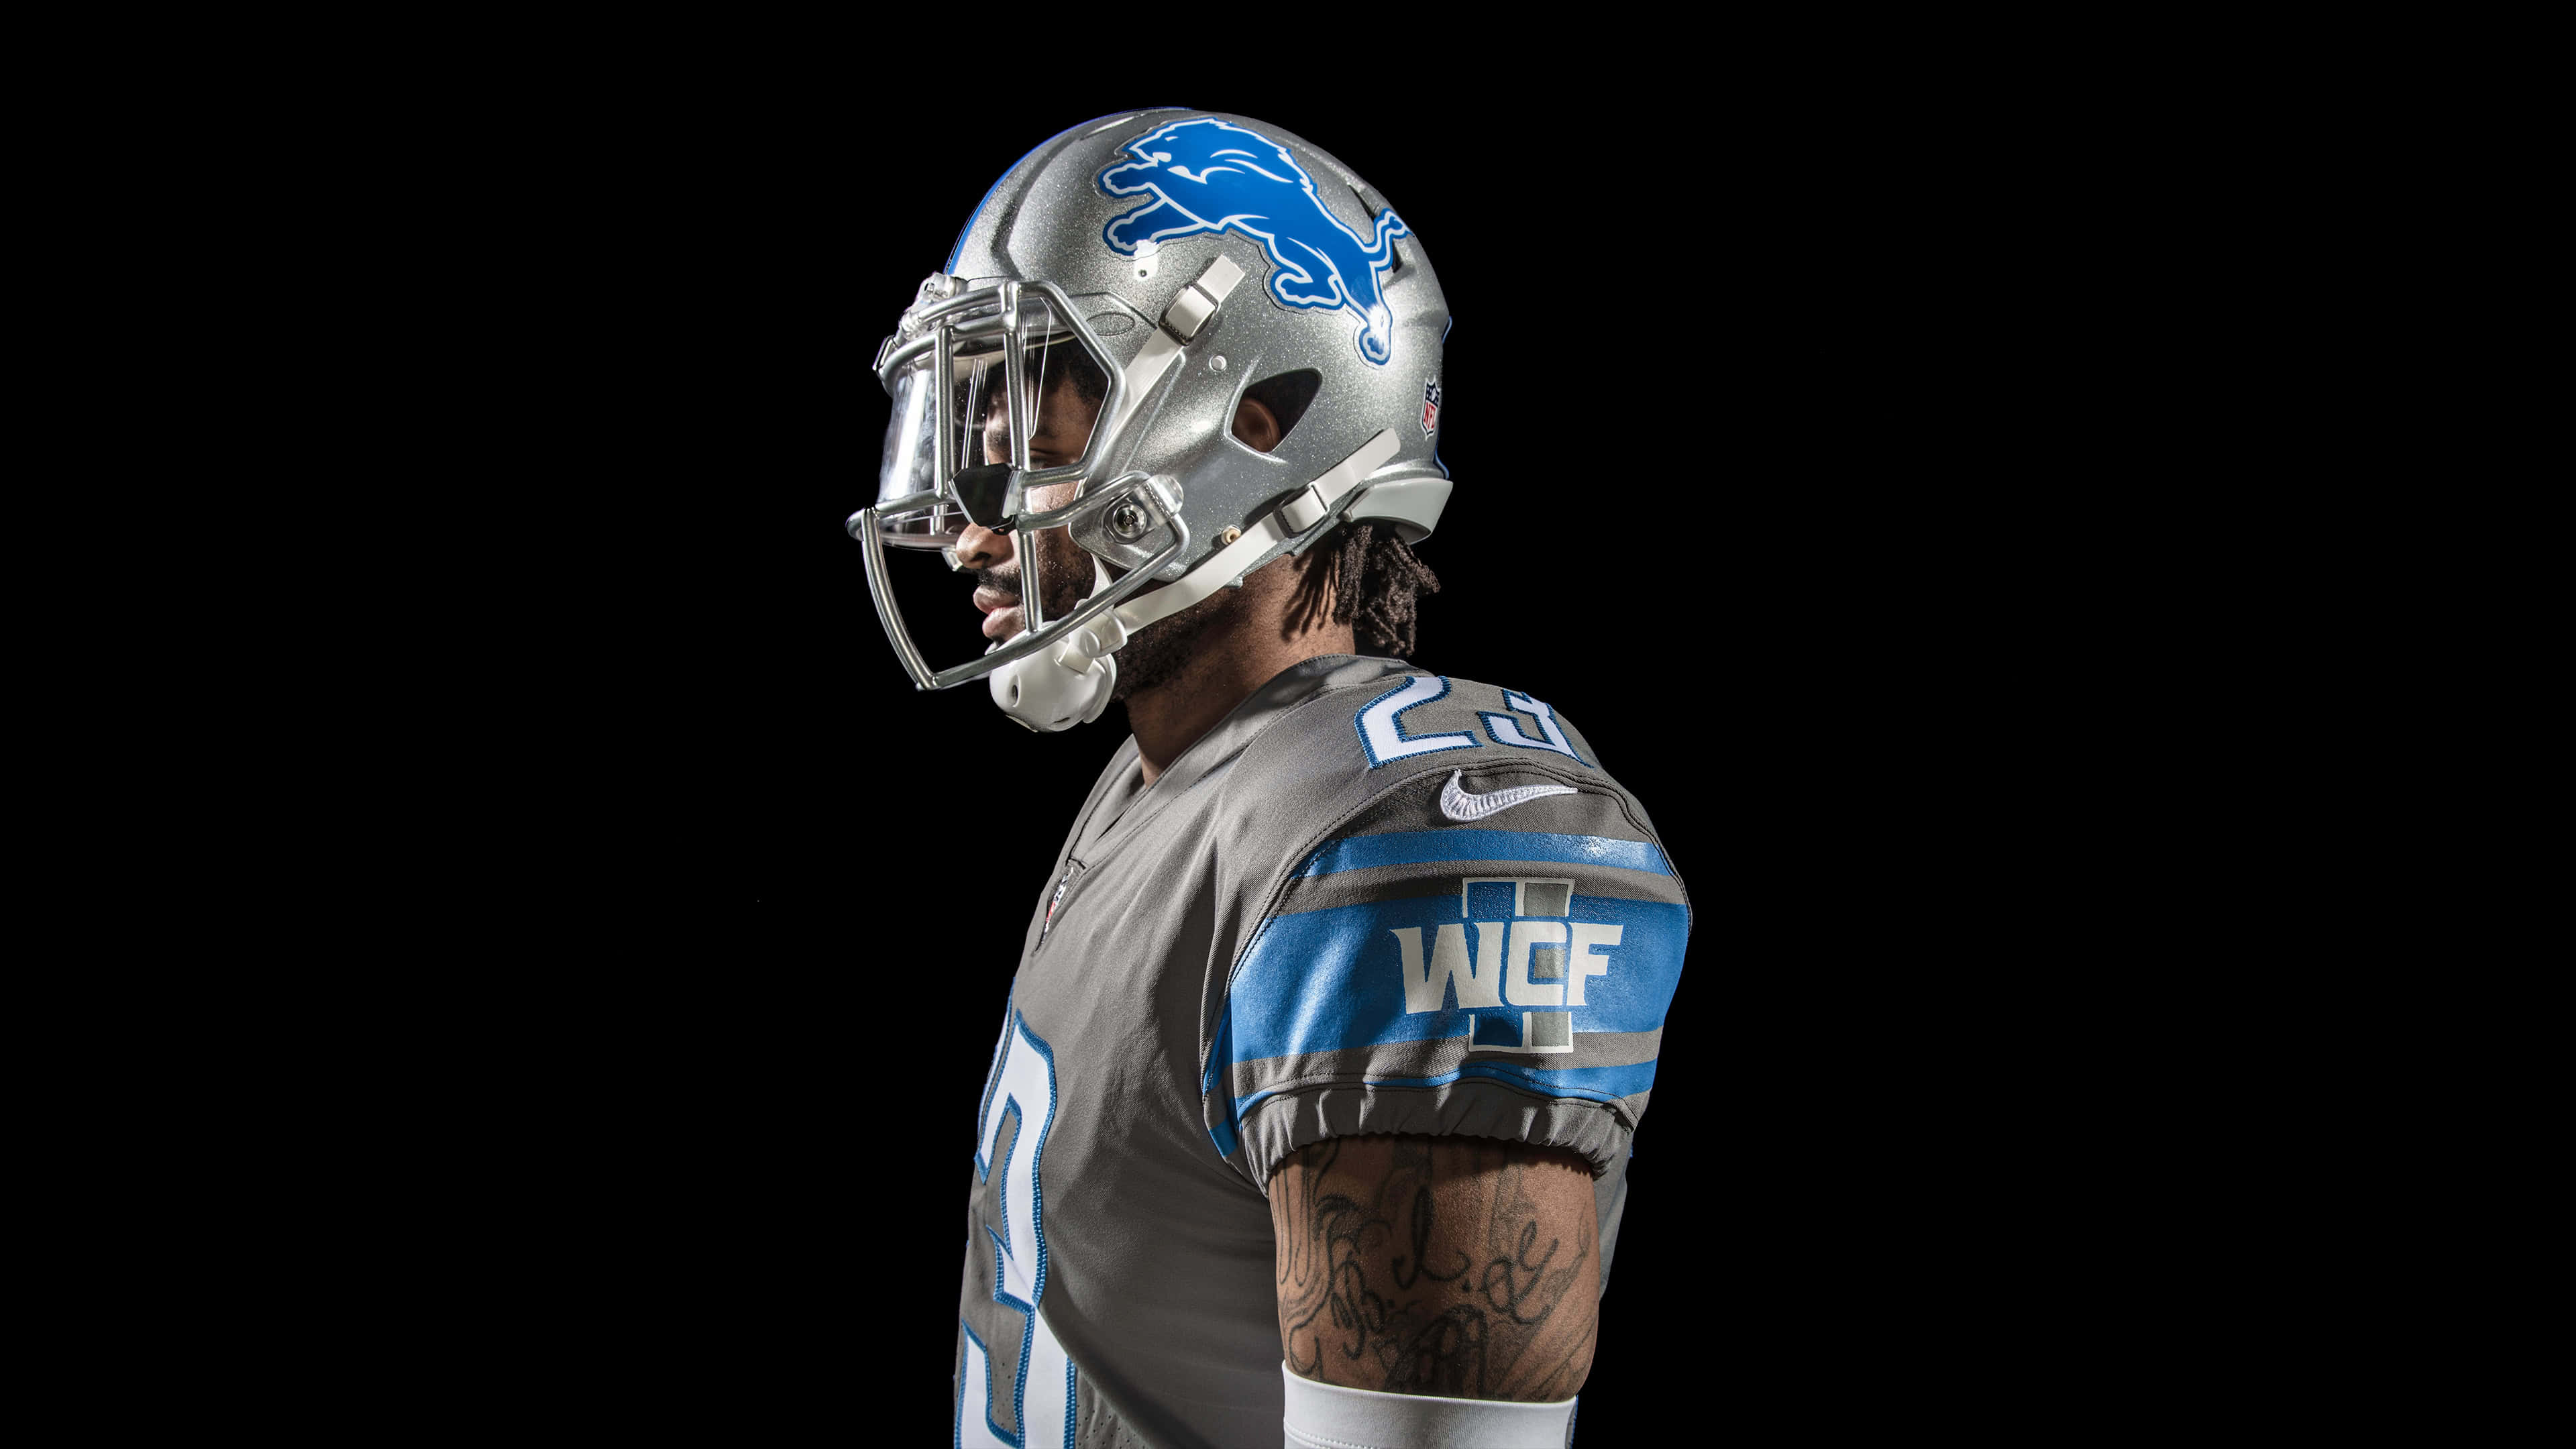 Detroit Lions Nfl Football Uhd 4k Wallpaper Pixelz